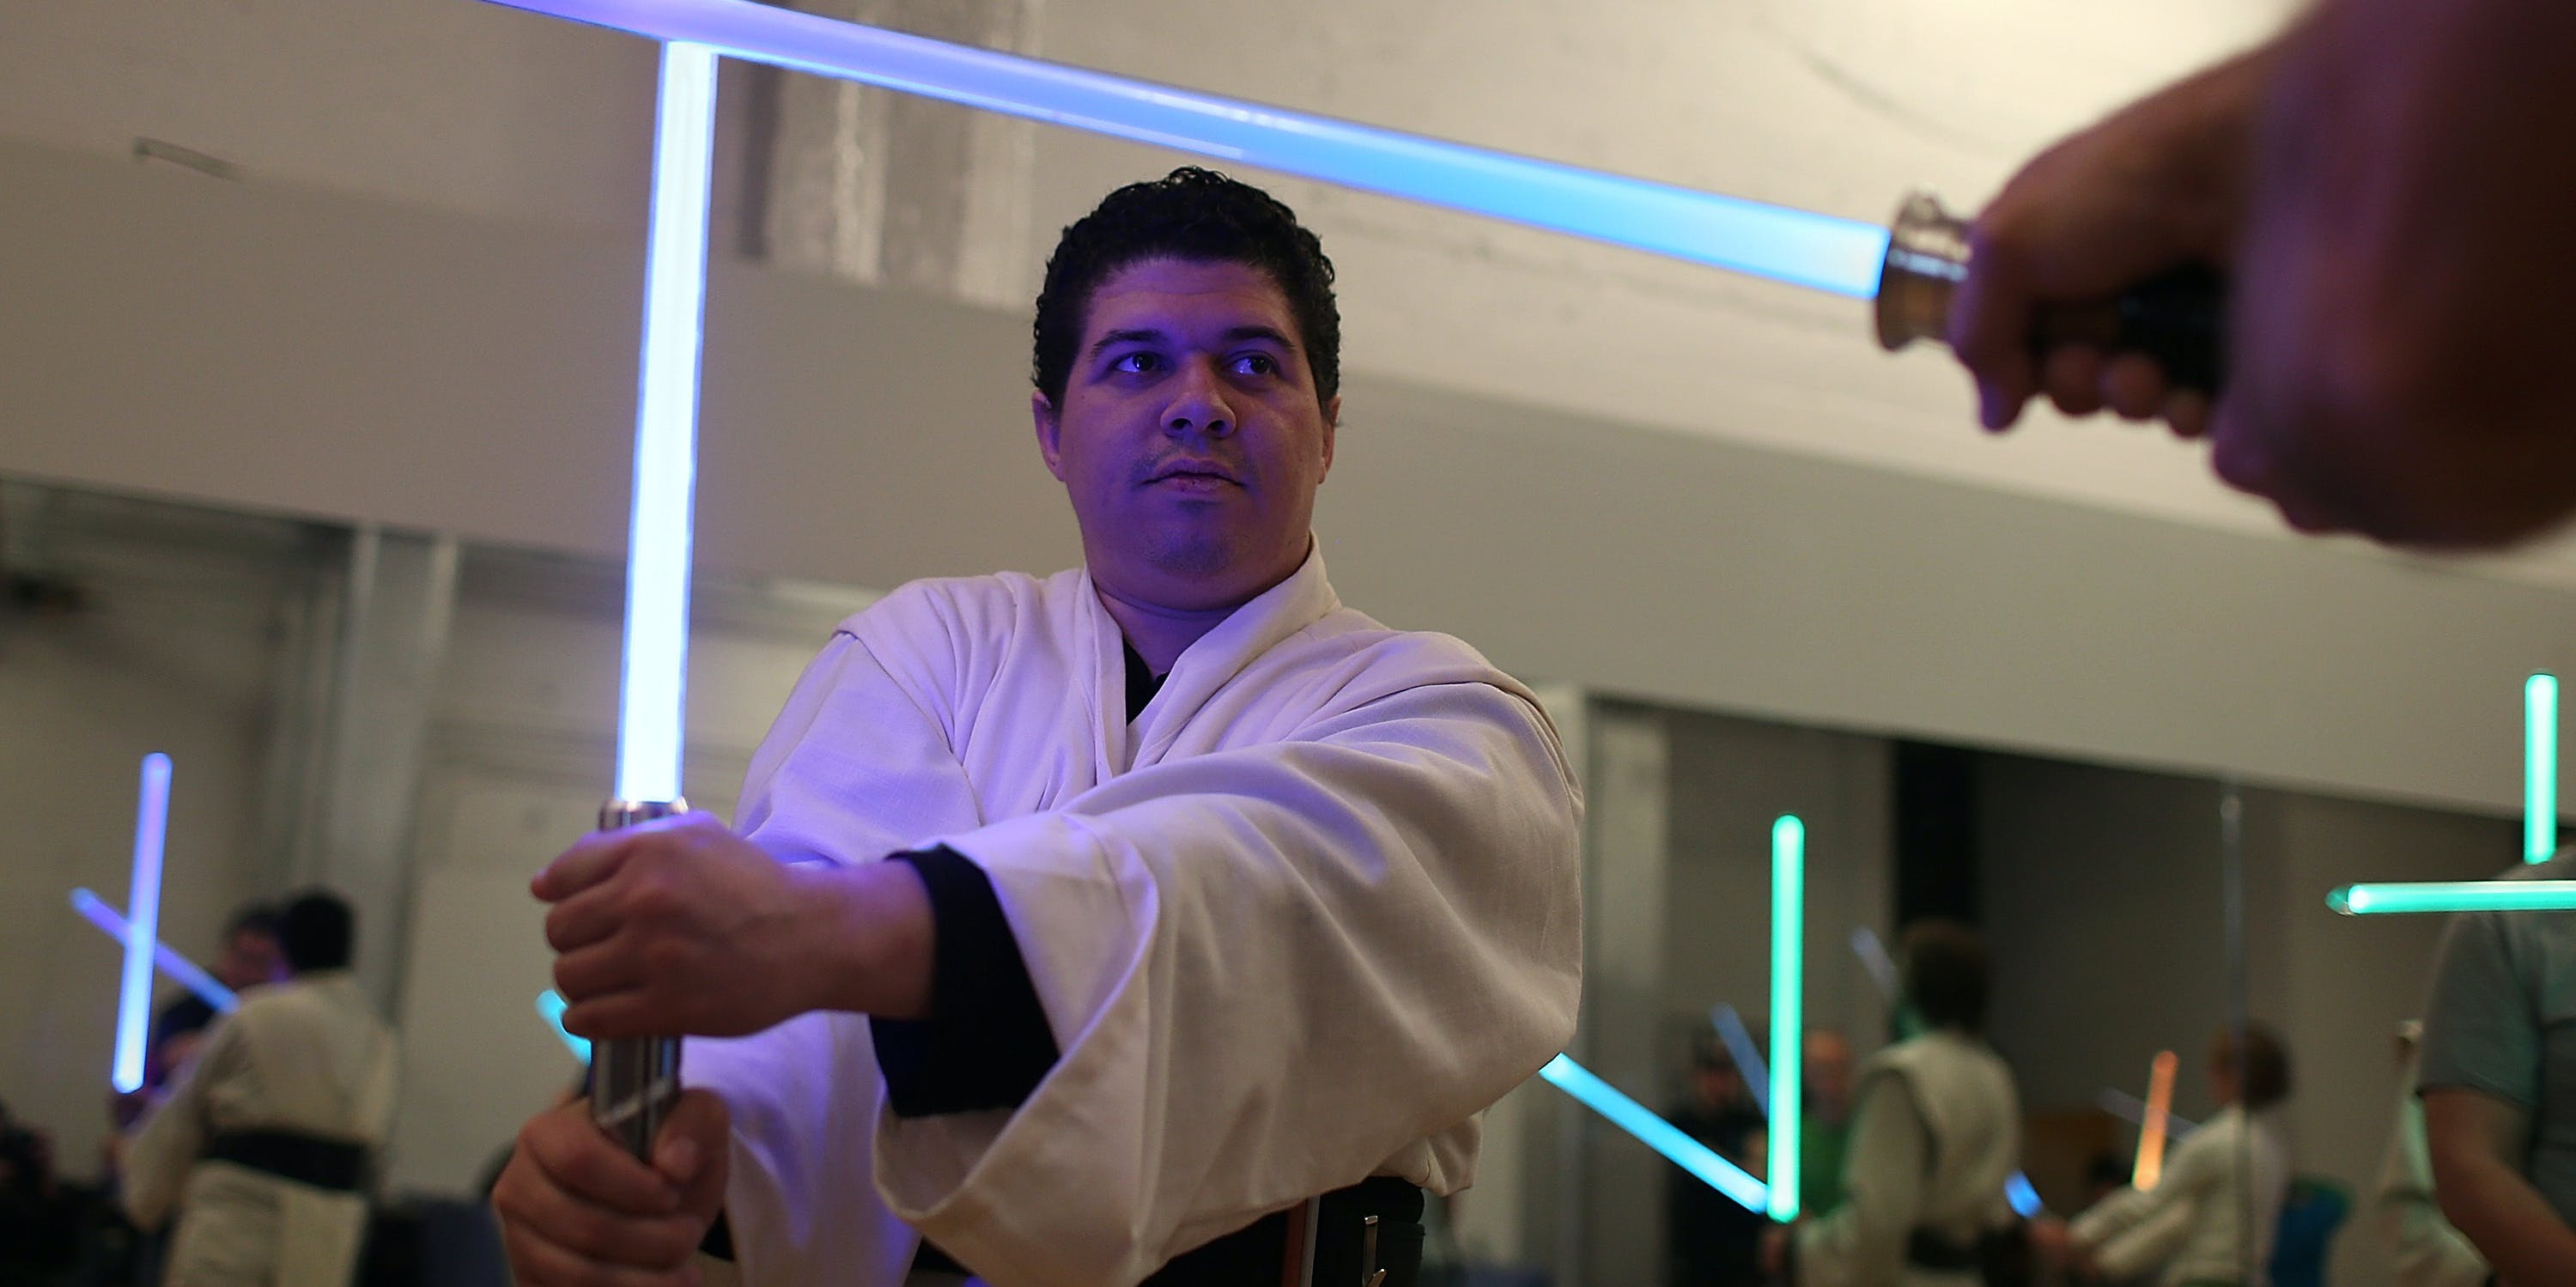 SAN FRANCISCO, CA - FEBRUARY 24:  Julio Reyes practices combat moves with a lightsaber during a Golden Gate Knights class in saber choreography on February 24, 2013 in San Francisco